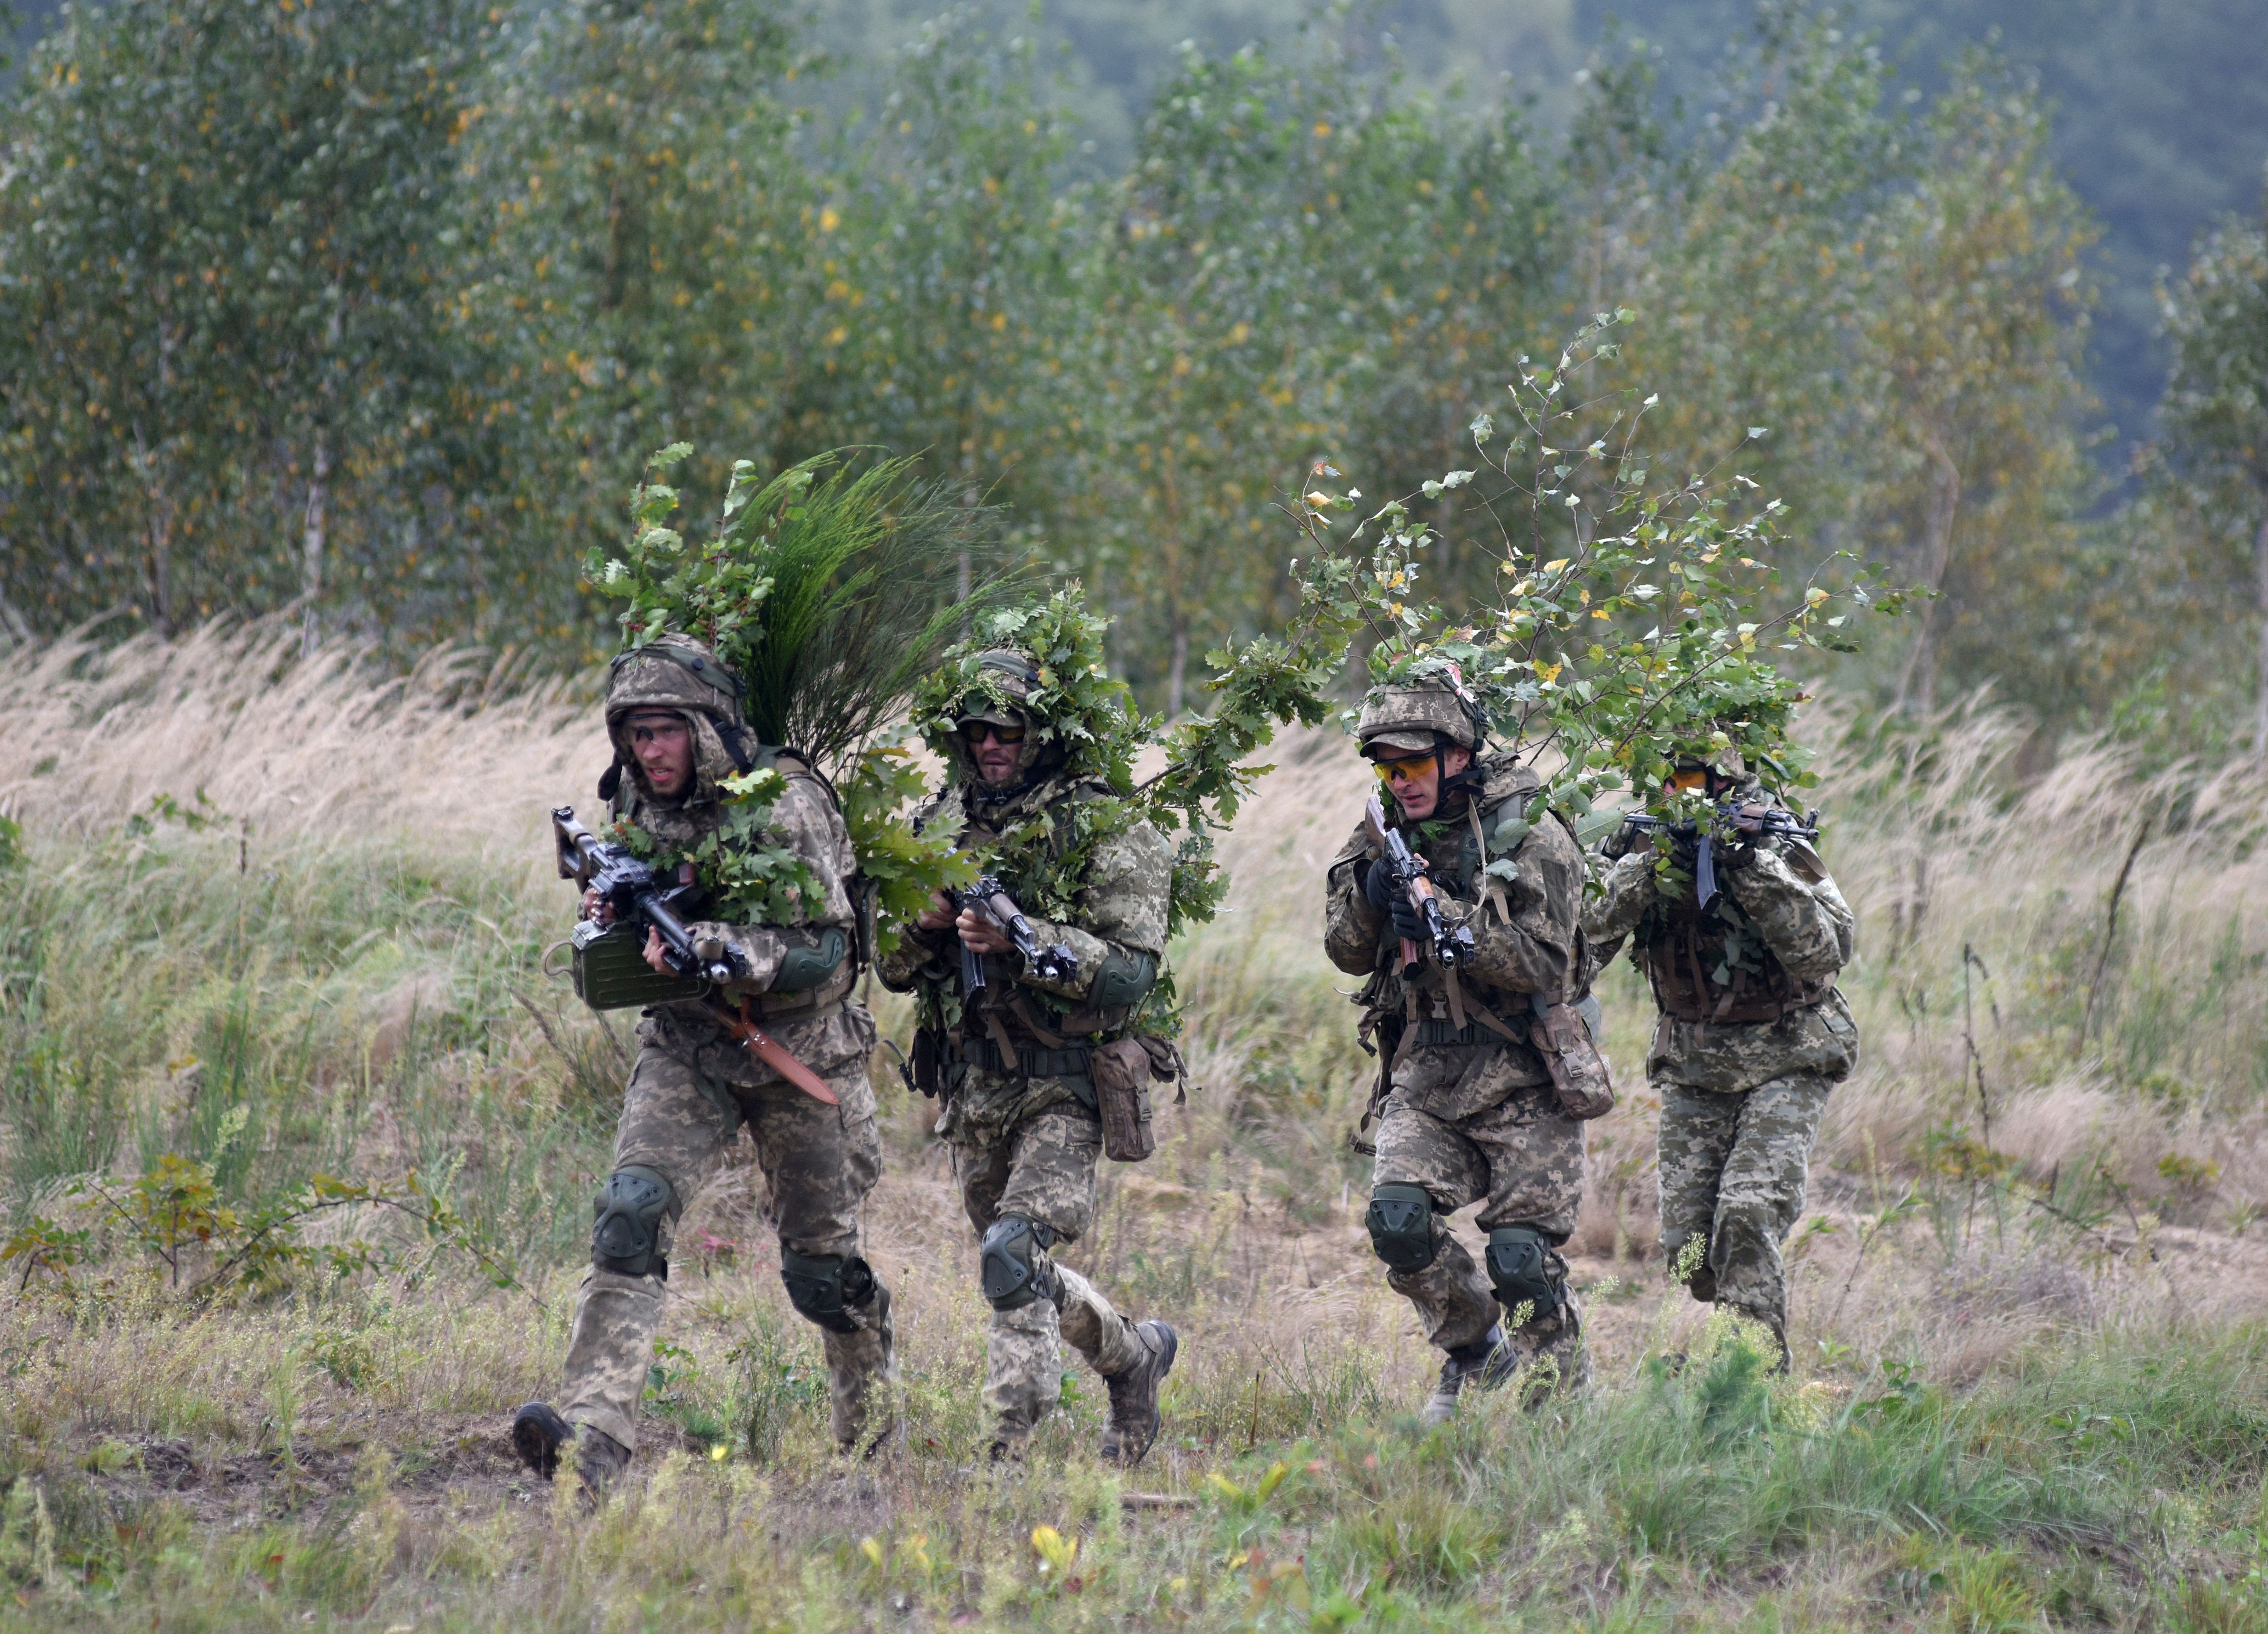 Ukrainian servicemen take part in the joint Rapid Trident military exercises with the United States and other NATO countries nor far from Lviv on September 24, 2021. (Photo by YURIY DYACHYSHYN/AFP via Getty Images)